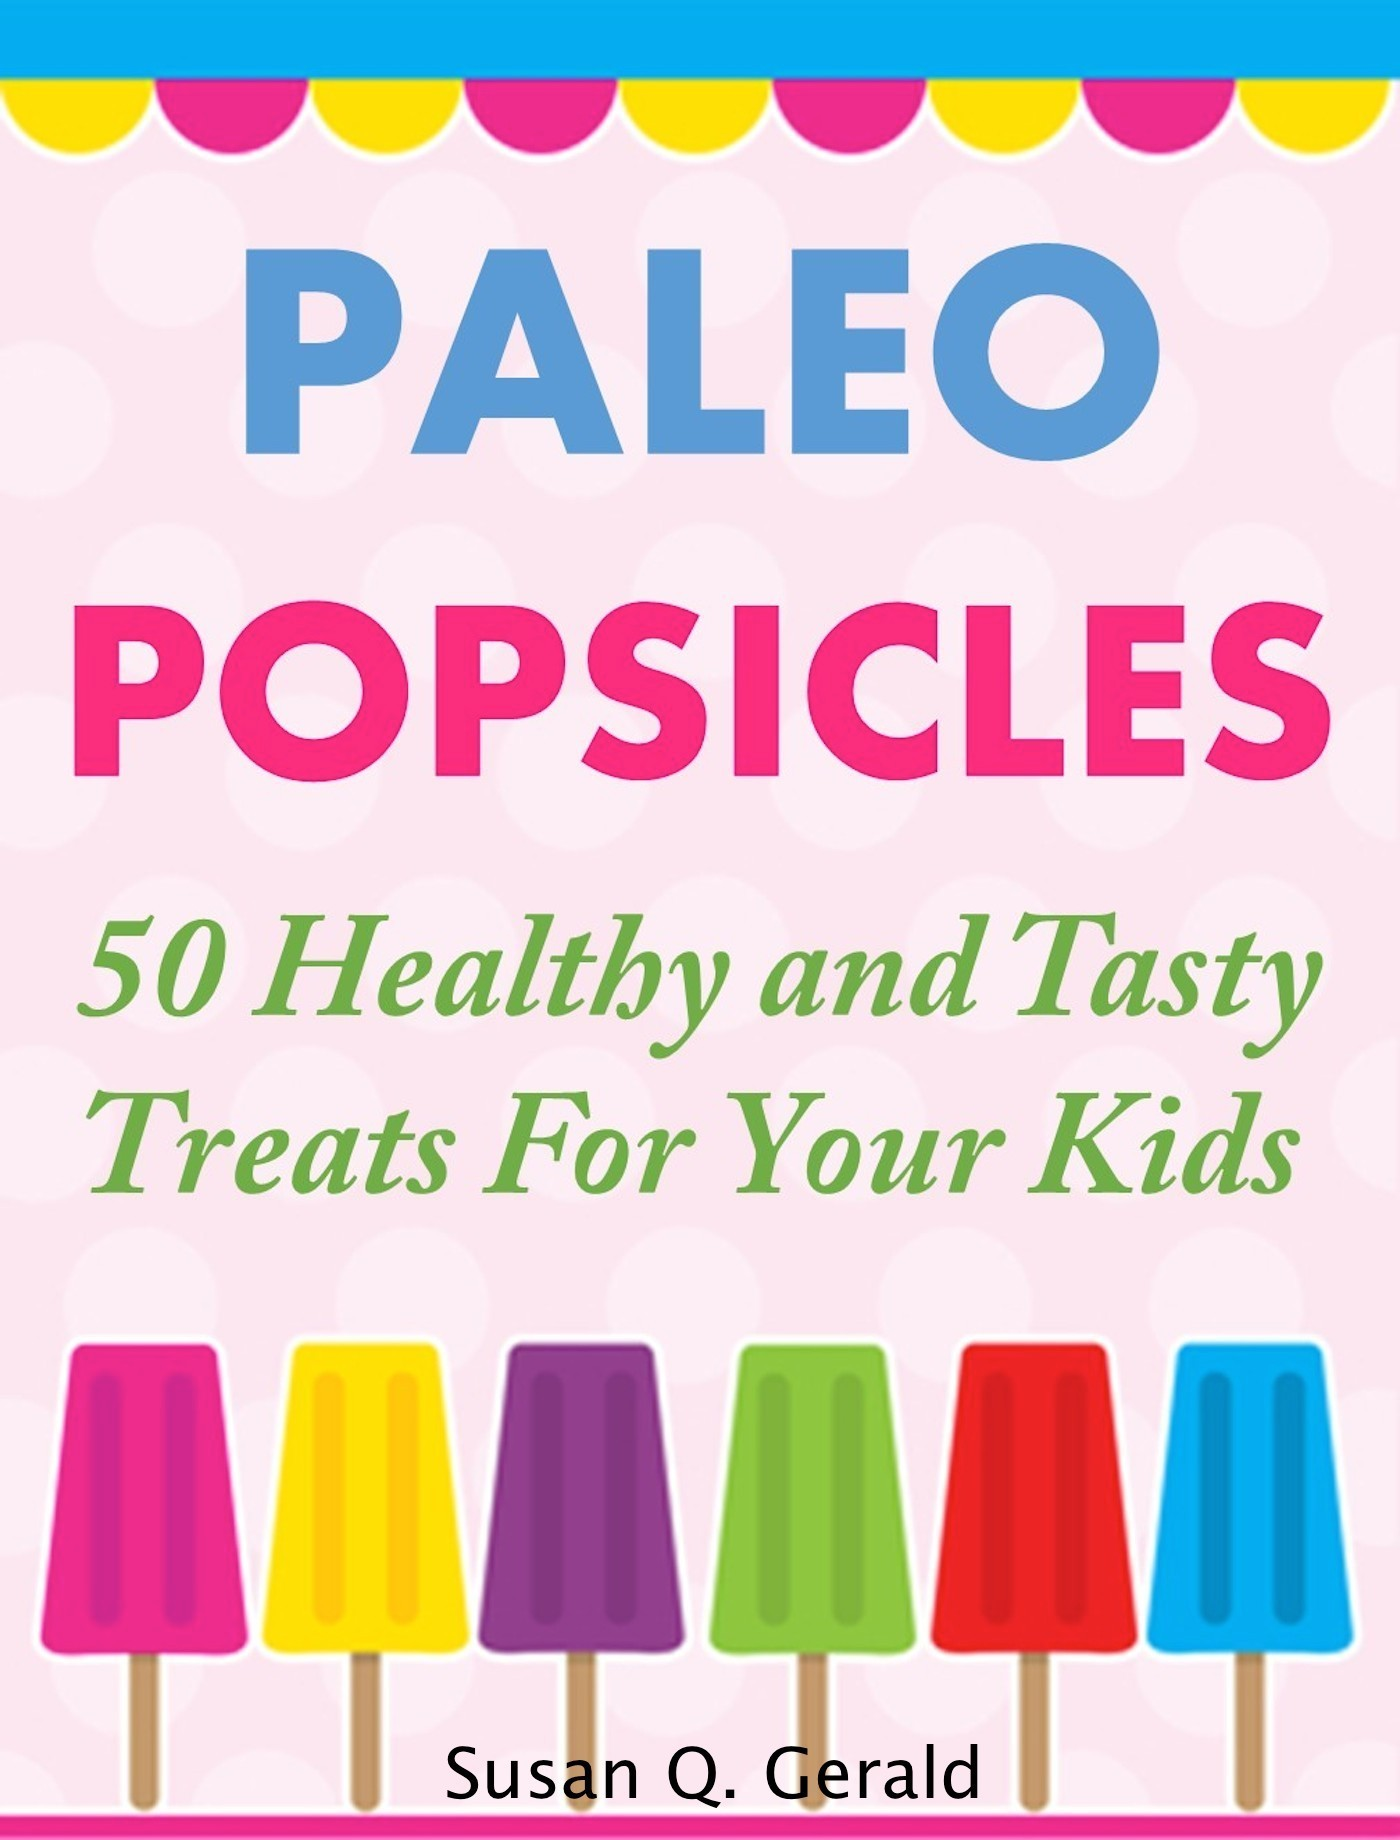 Paleo Popsicles: 50 Healthy and Tasty Treats For Your Kids  by  Susan Q. Gerald